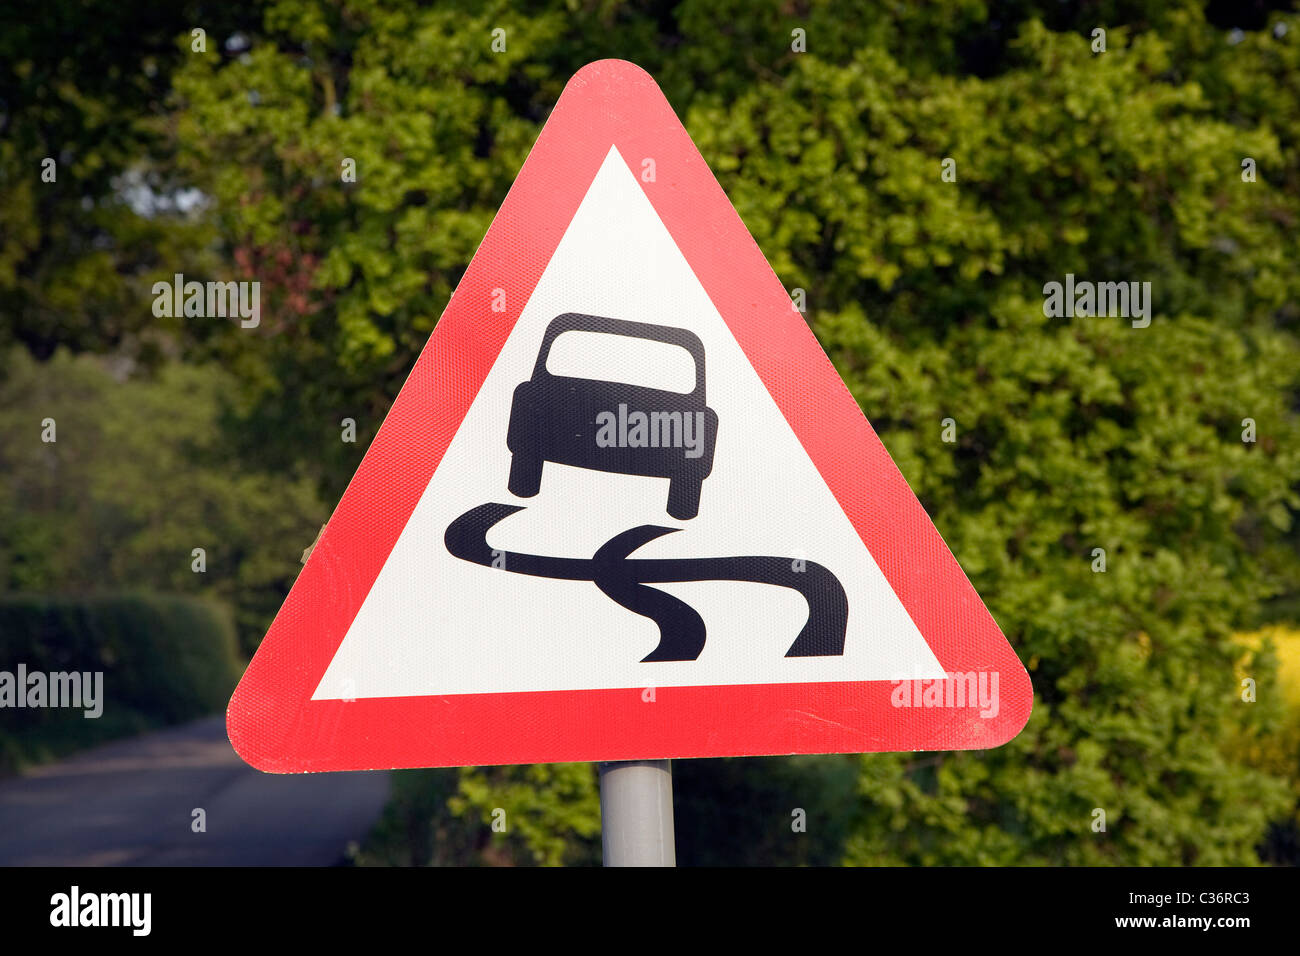 Red Triangle Road Sign For Risk Of Skidding Stock Photo 36414787